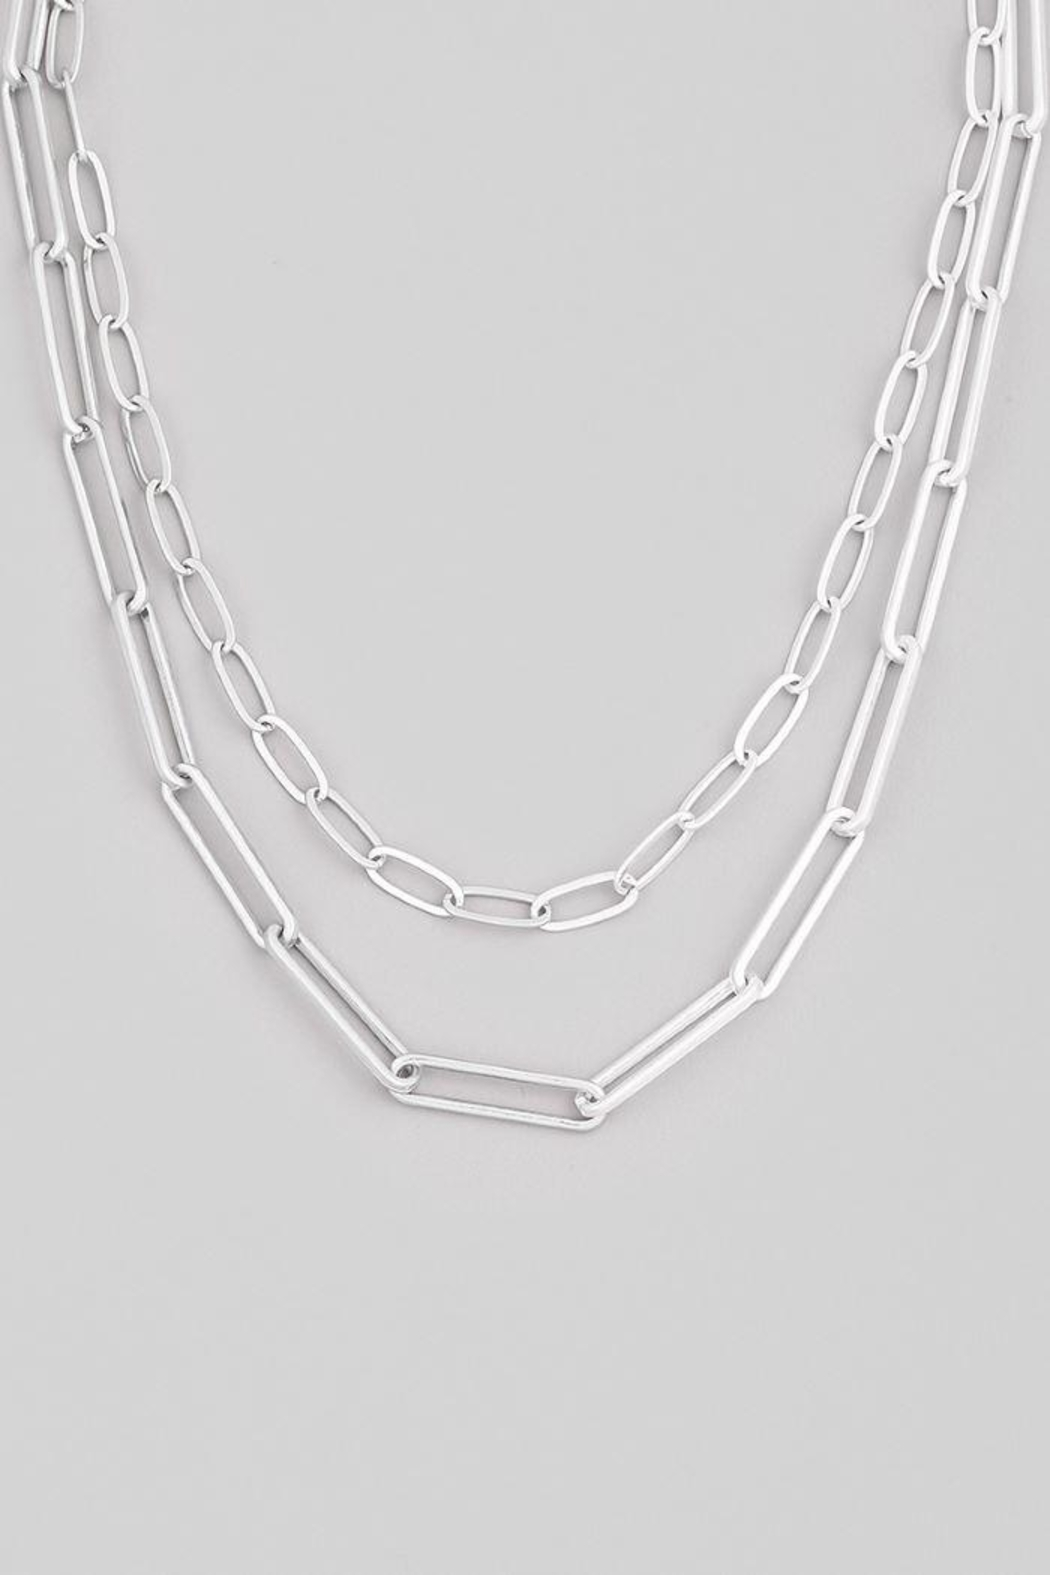 Fame Accessories Silver Paperclip Chain Link Necklace - Main Image